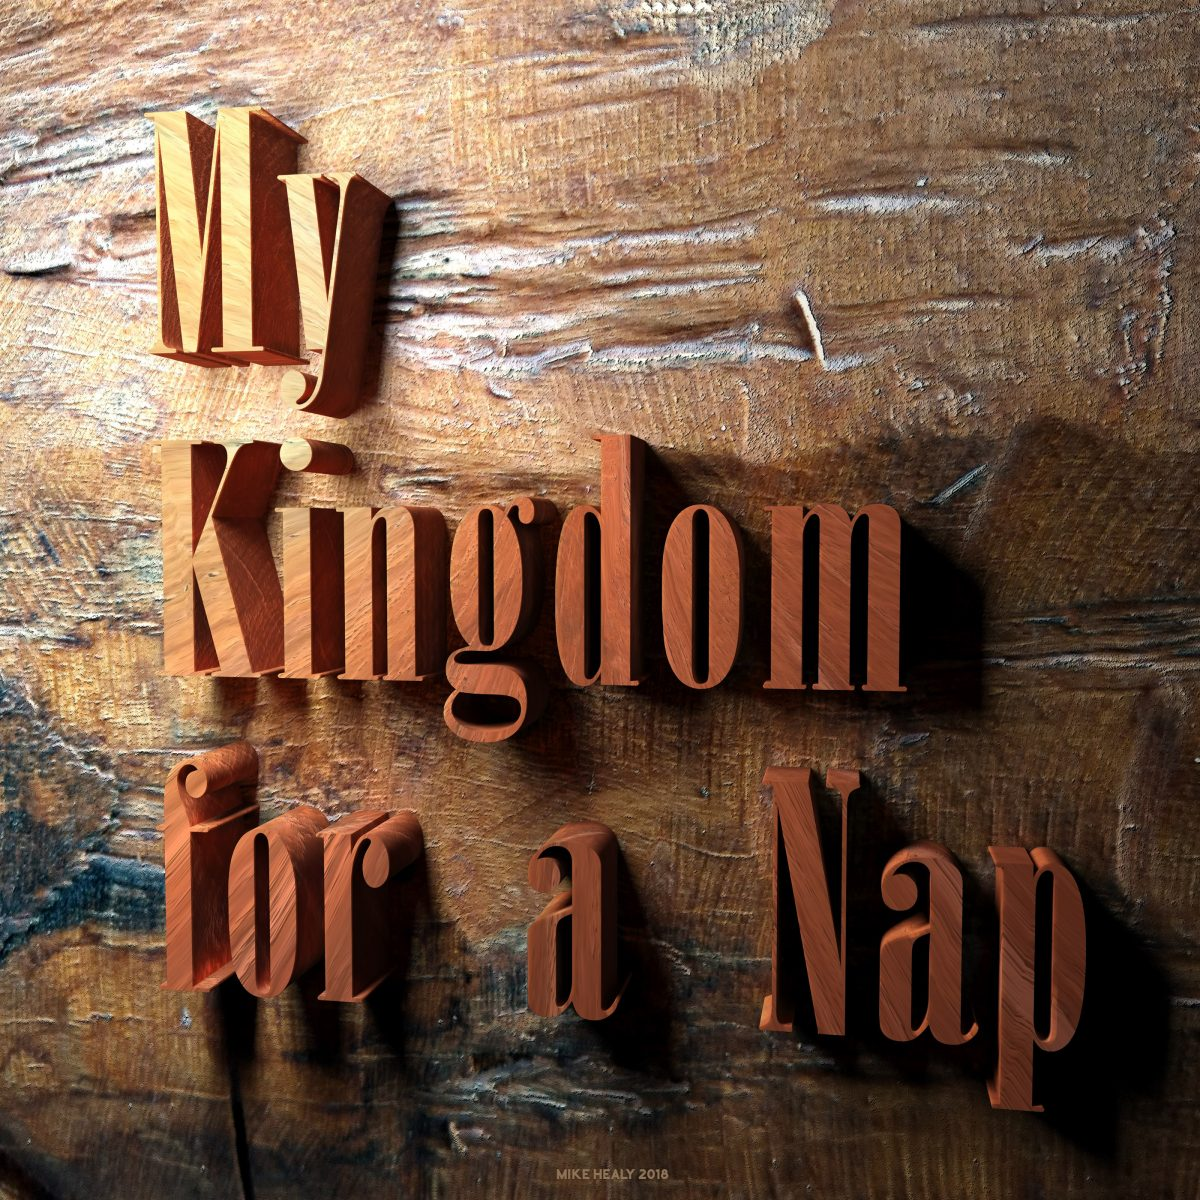 My Kingdom for a Nap